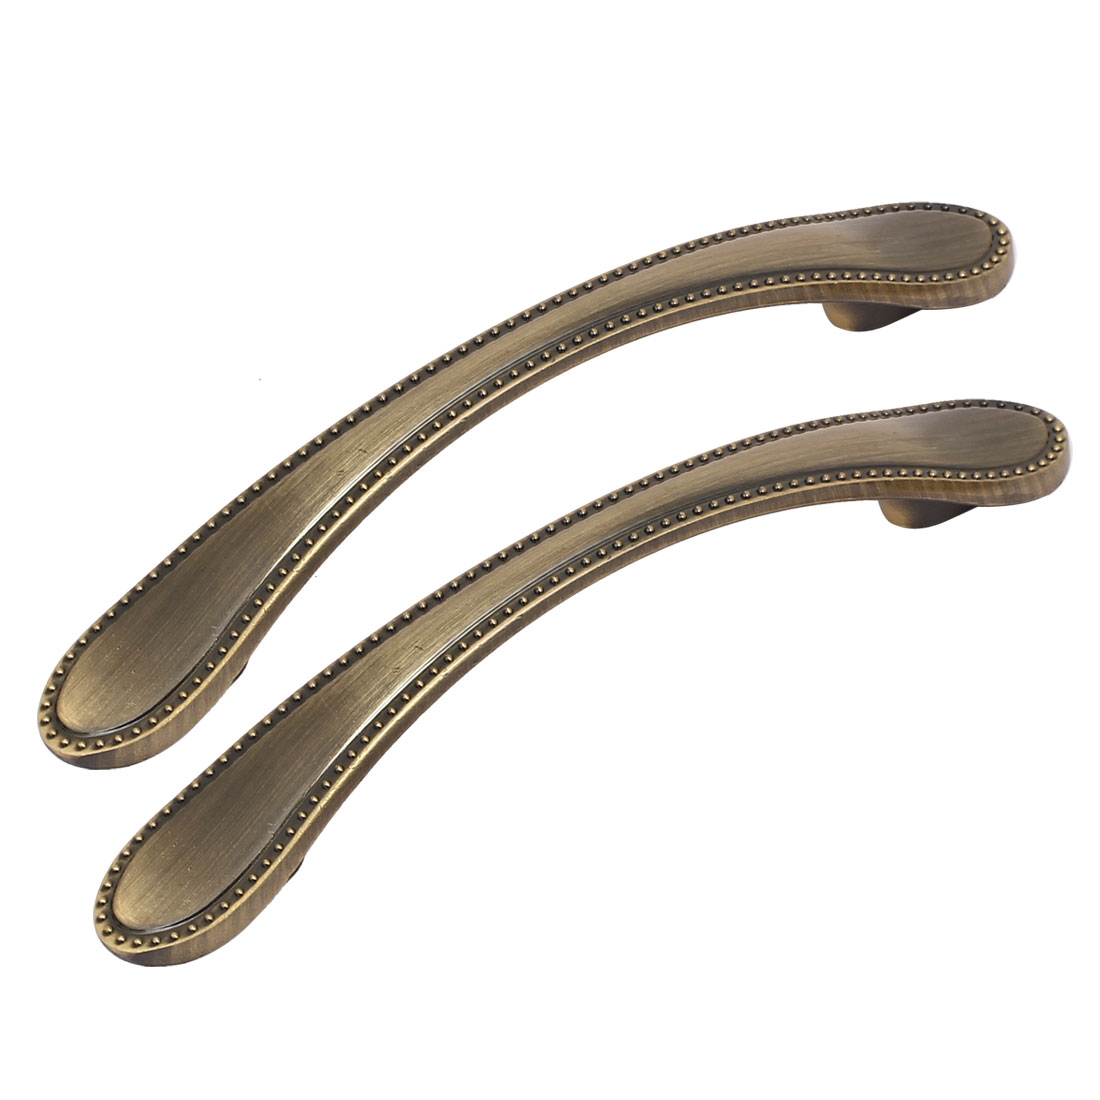 Home Office Metal Pull Handle Grasp Bronze Tone 96mm Hole Spacing 2pcs